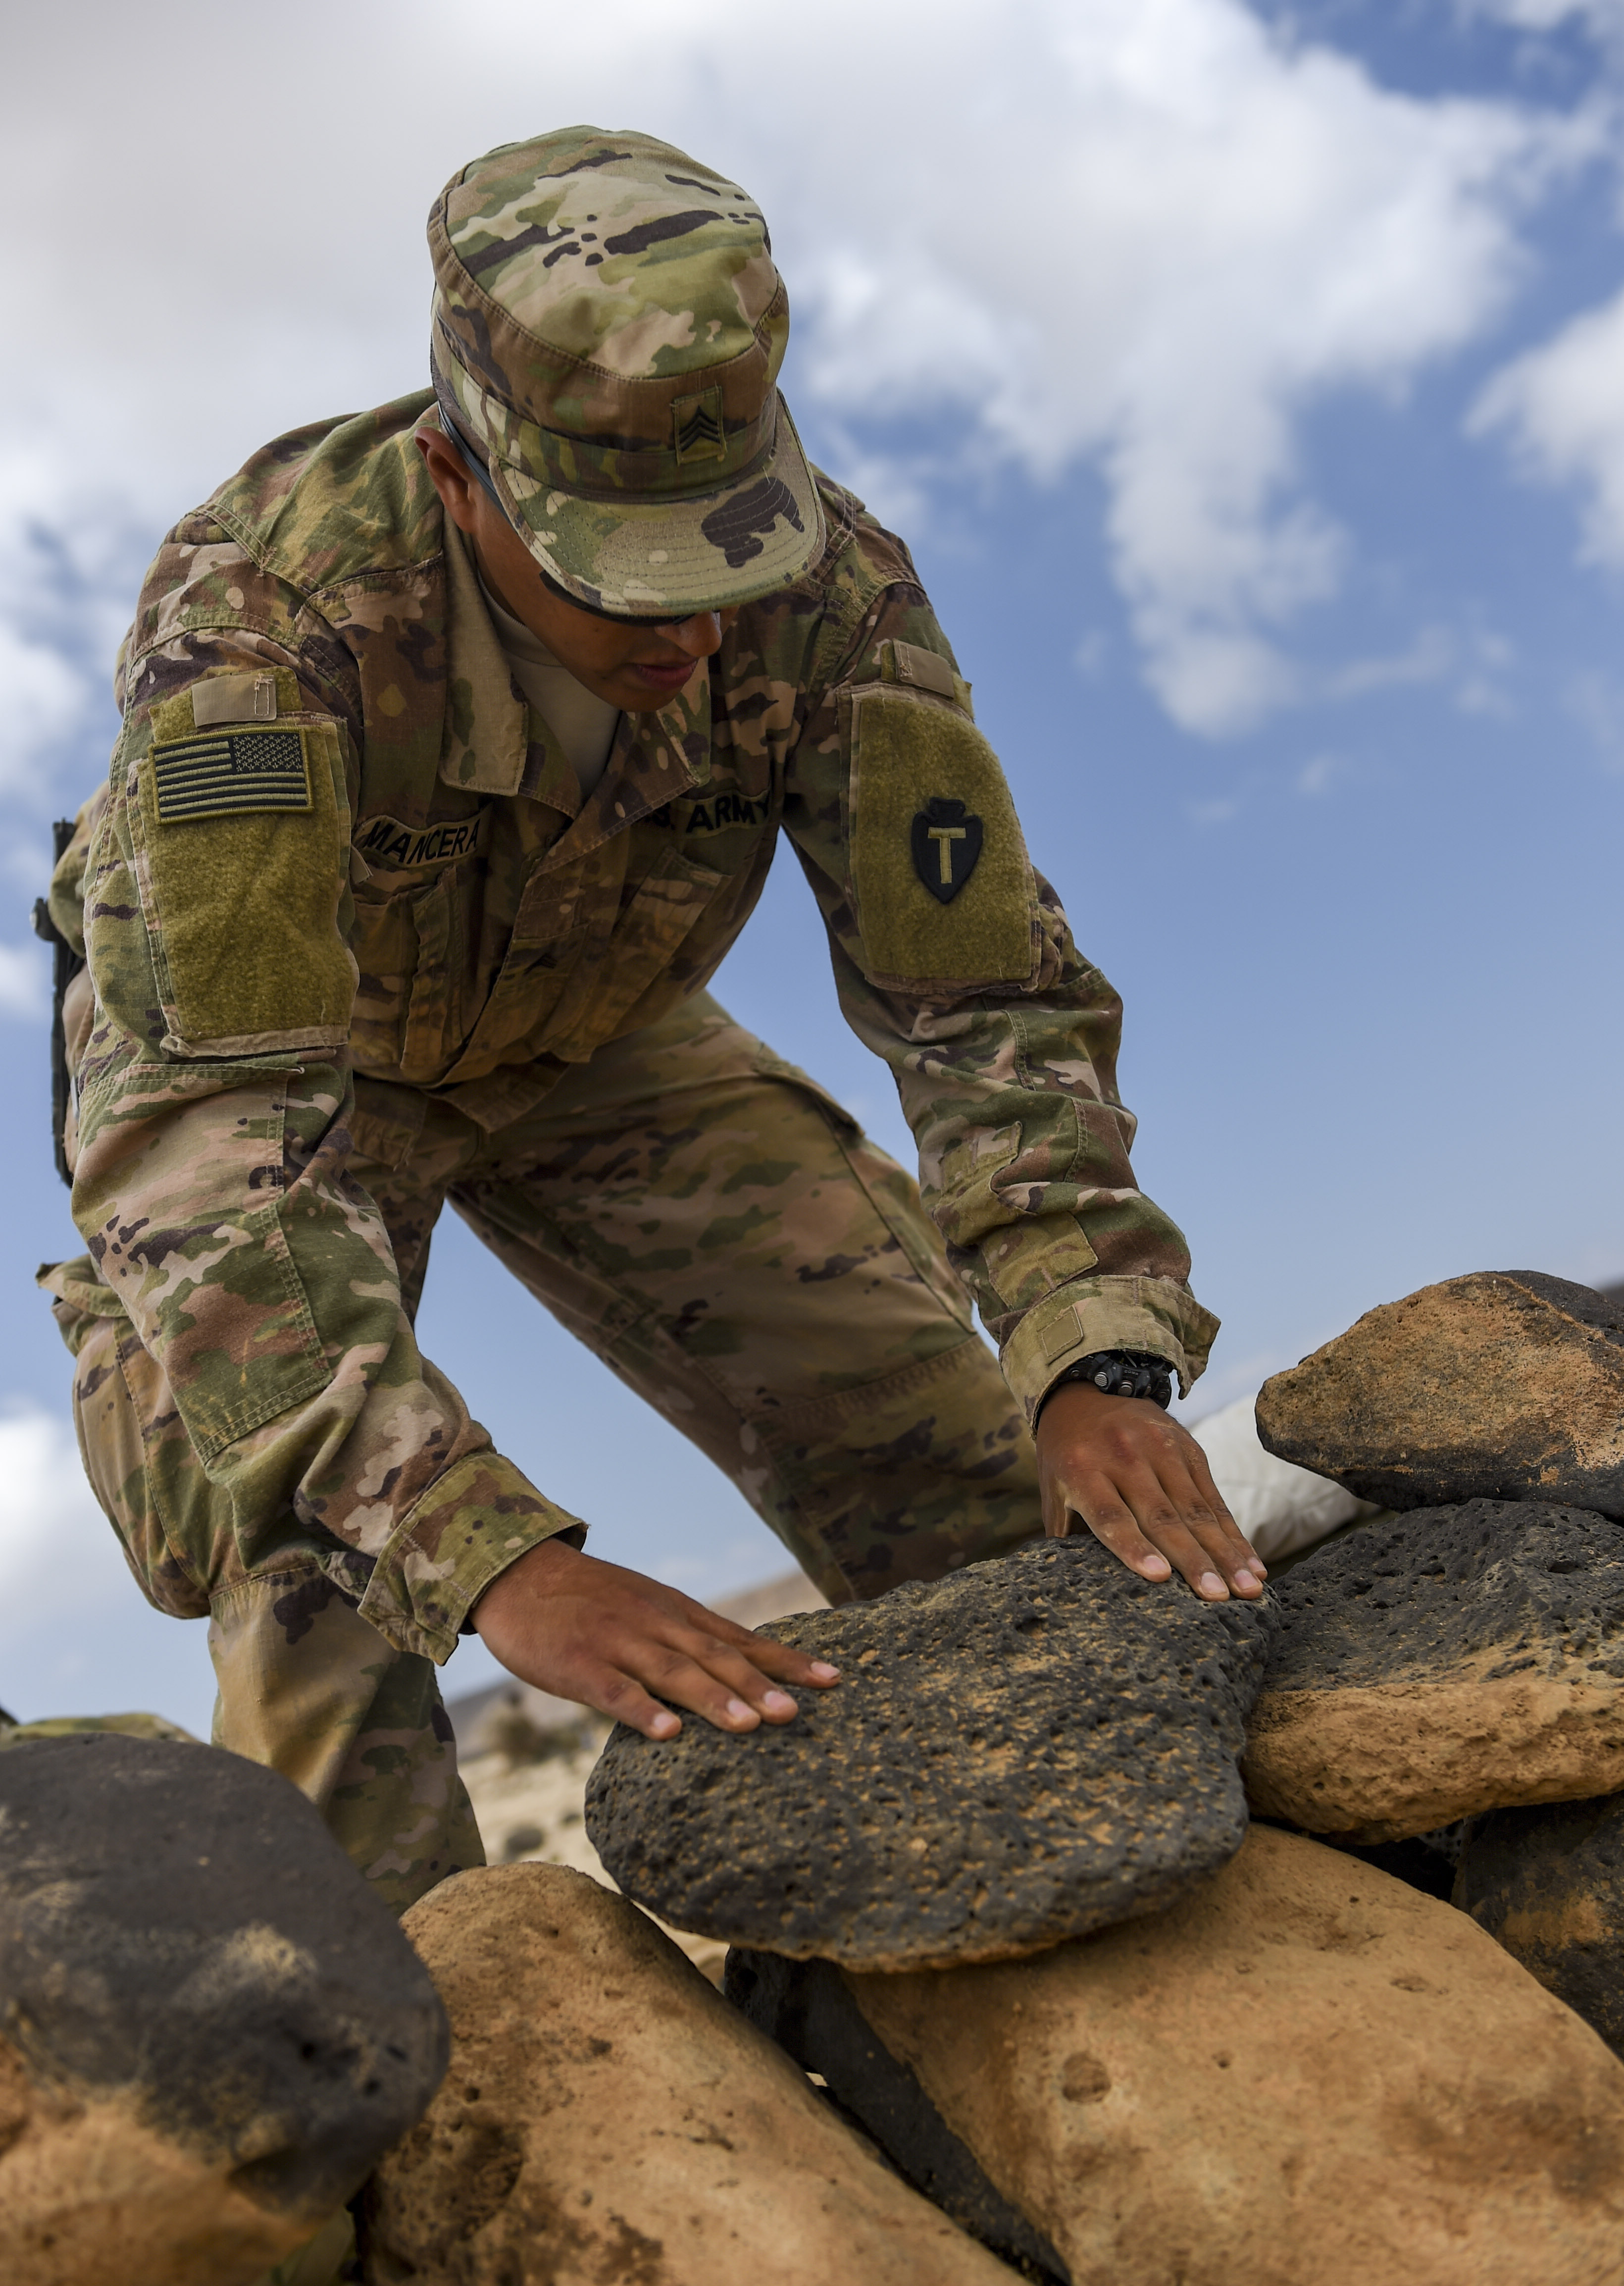 U.S. Army National Guard Sgt. Gabriel Mancera, 3rd Battalion, 144th Infantry Regiment, Task Force Bayonet, stacks rocks as he sets up a defensive position on the first day of a French Desert Commando Course at the Djibouti Range Complex near Arta, Djibouti, Nov. 26, 2017. The 12-day course will expose service members to the fundamentals of desert combat, survival, and troop movements while also bridging language and cultural barriers between the French and American troops. (U.S. Air Force photo by Staff Sgt. Timothy Moore)